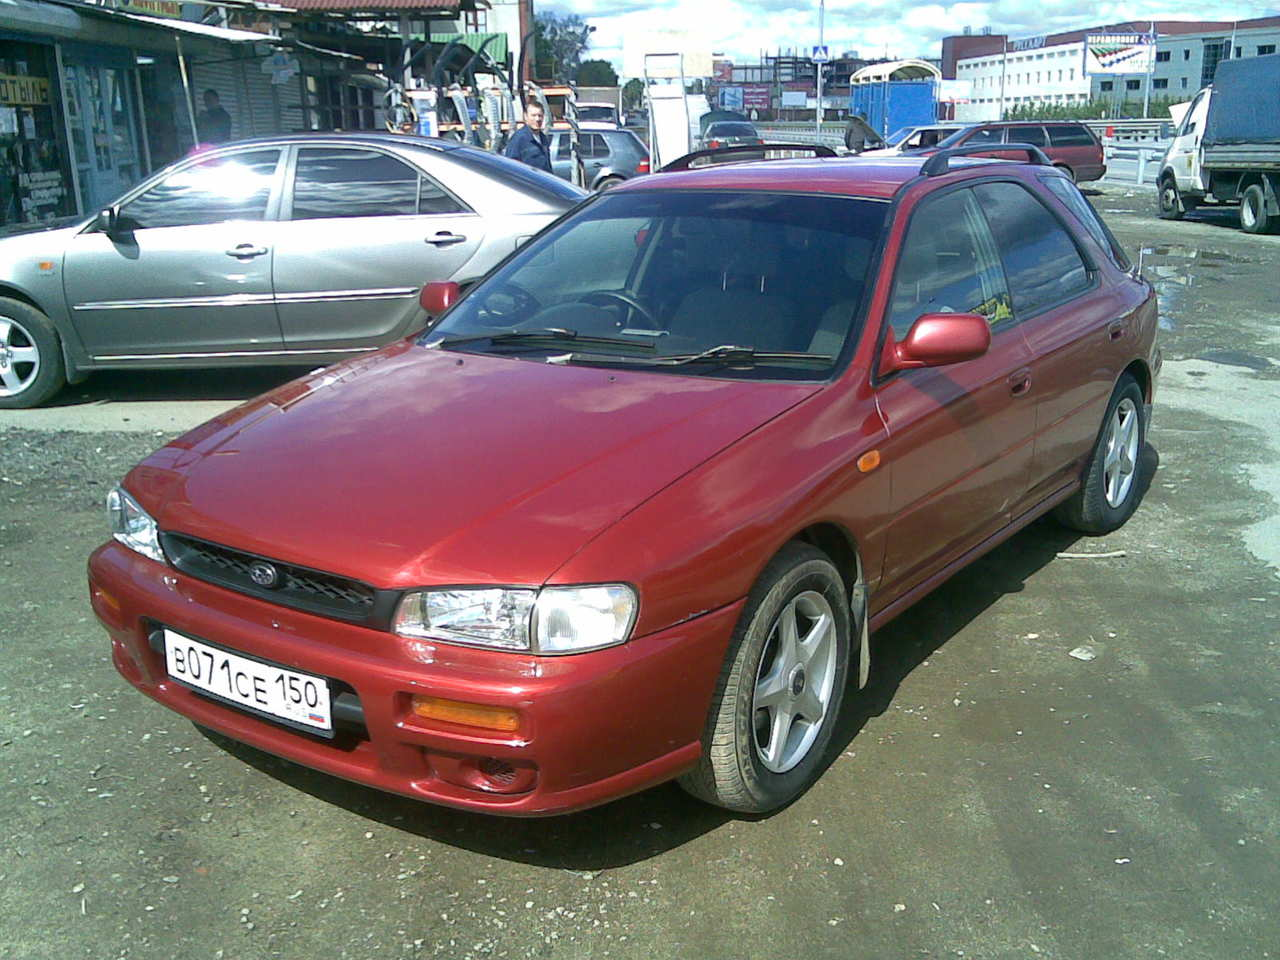 1999 subaru impreza wagon images 1500cc gasoline automatic for sale. Black Bedroom Furniture Sets. Home Design Ideas